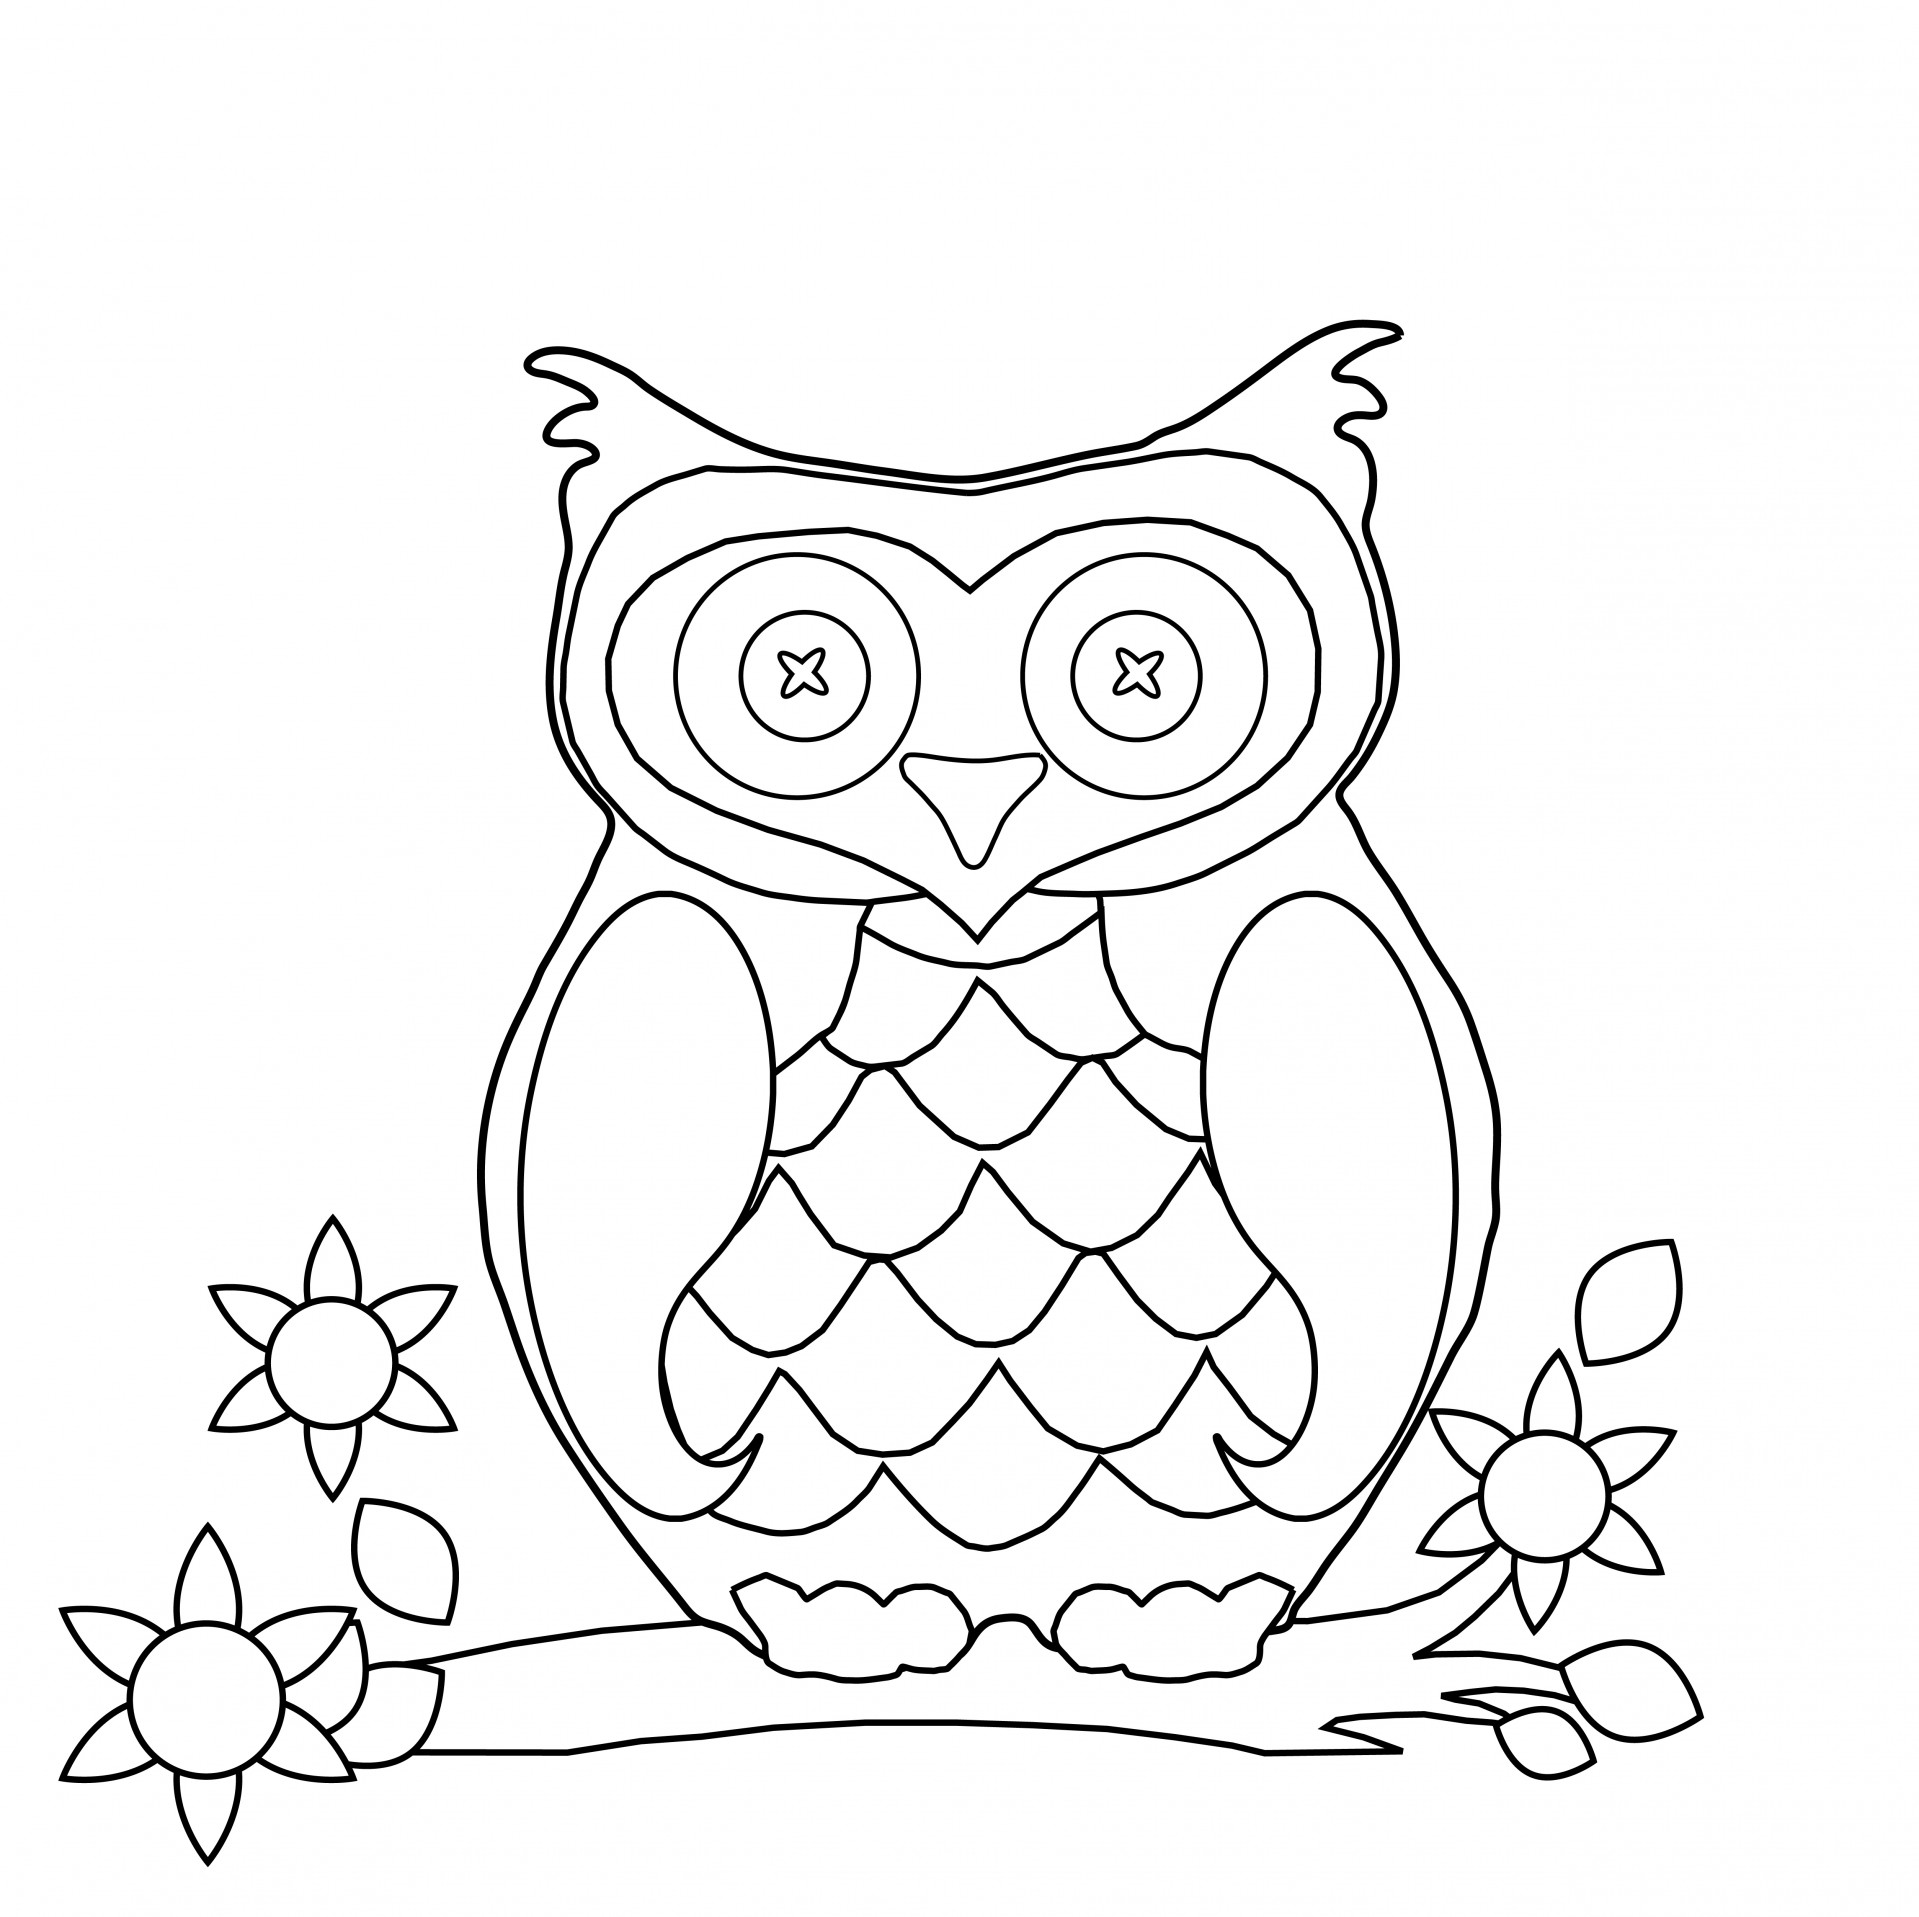 kids drawings for colouring free printable abstract coloring pages for adults colouring kids drawings for